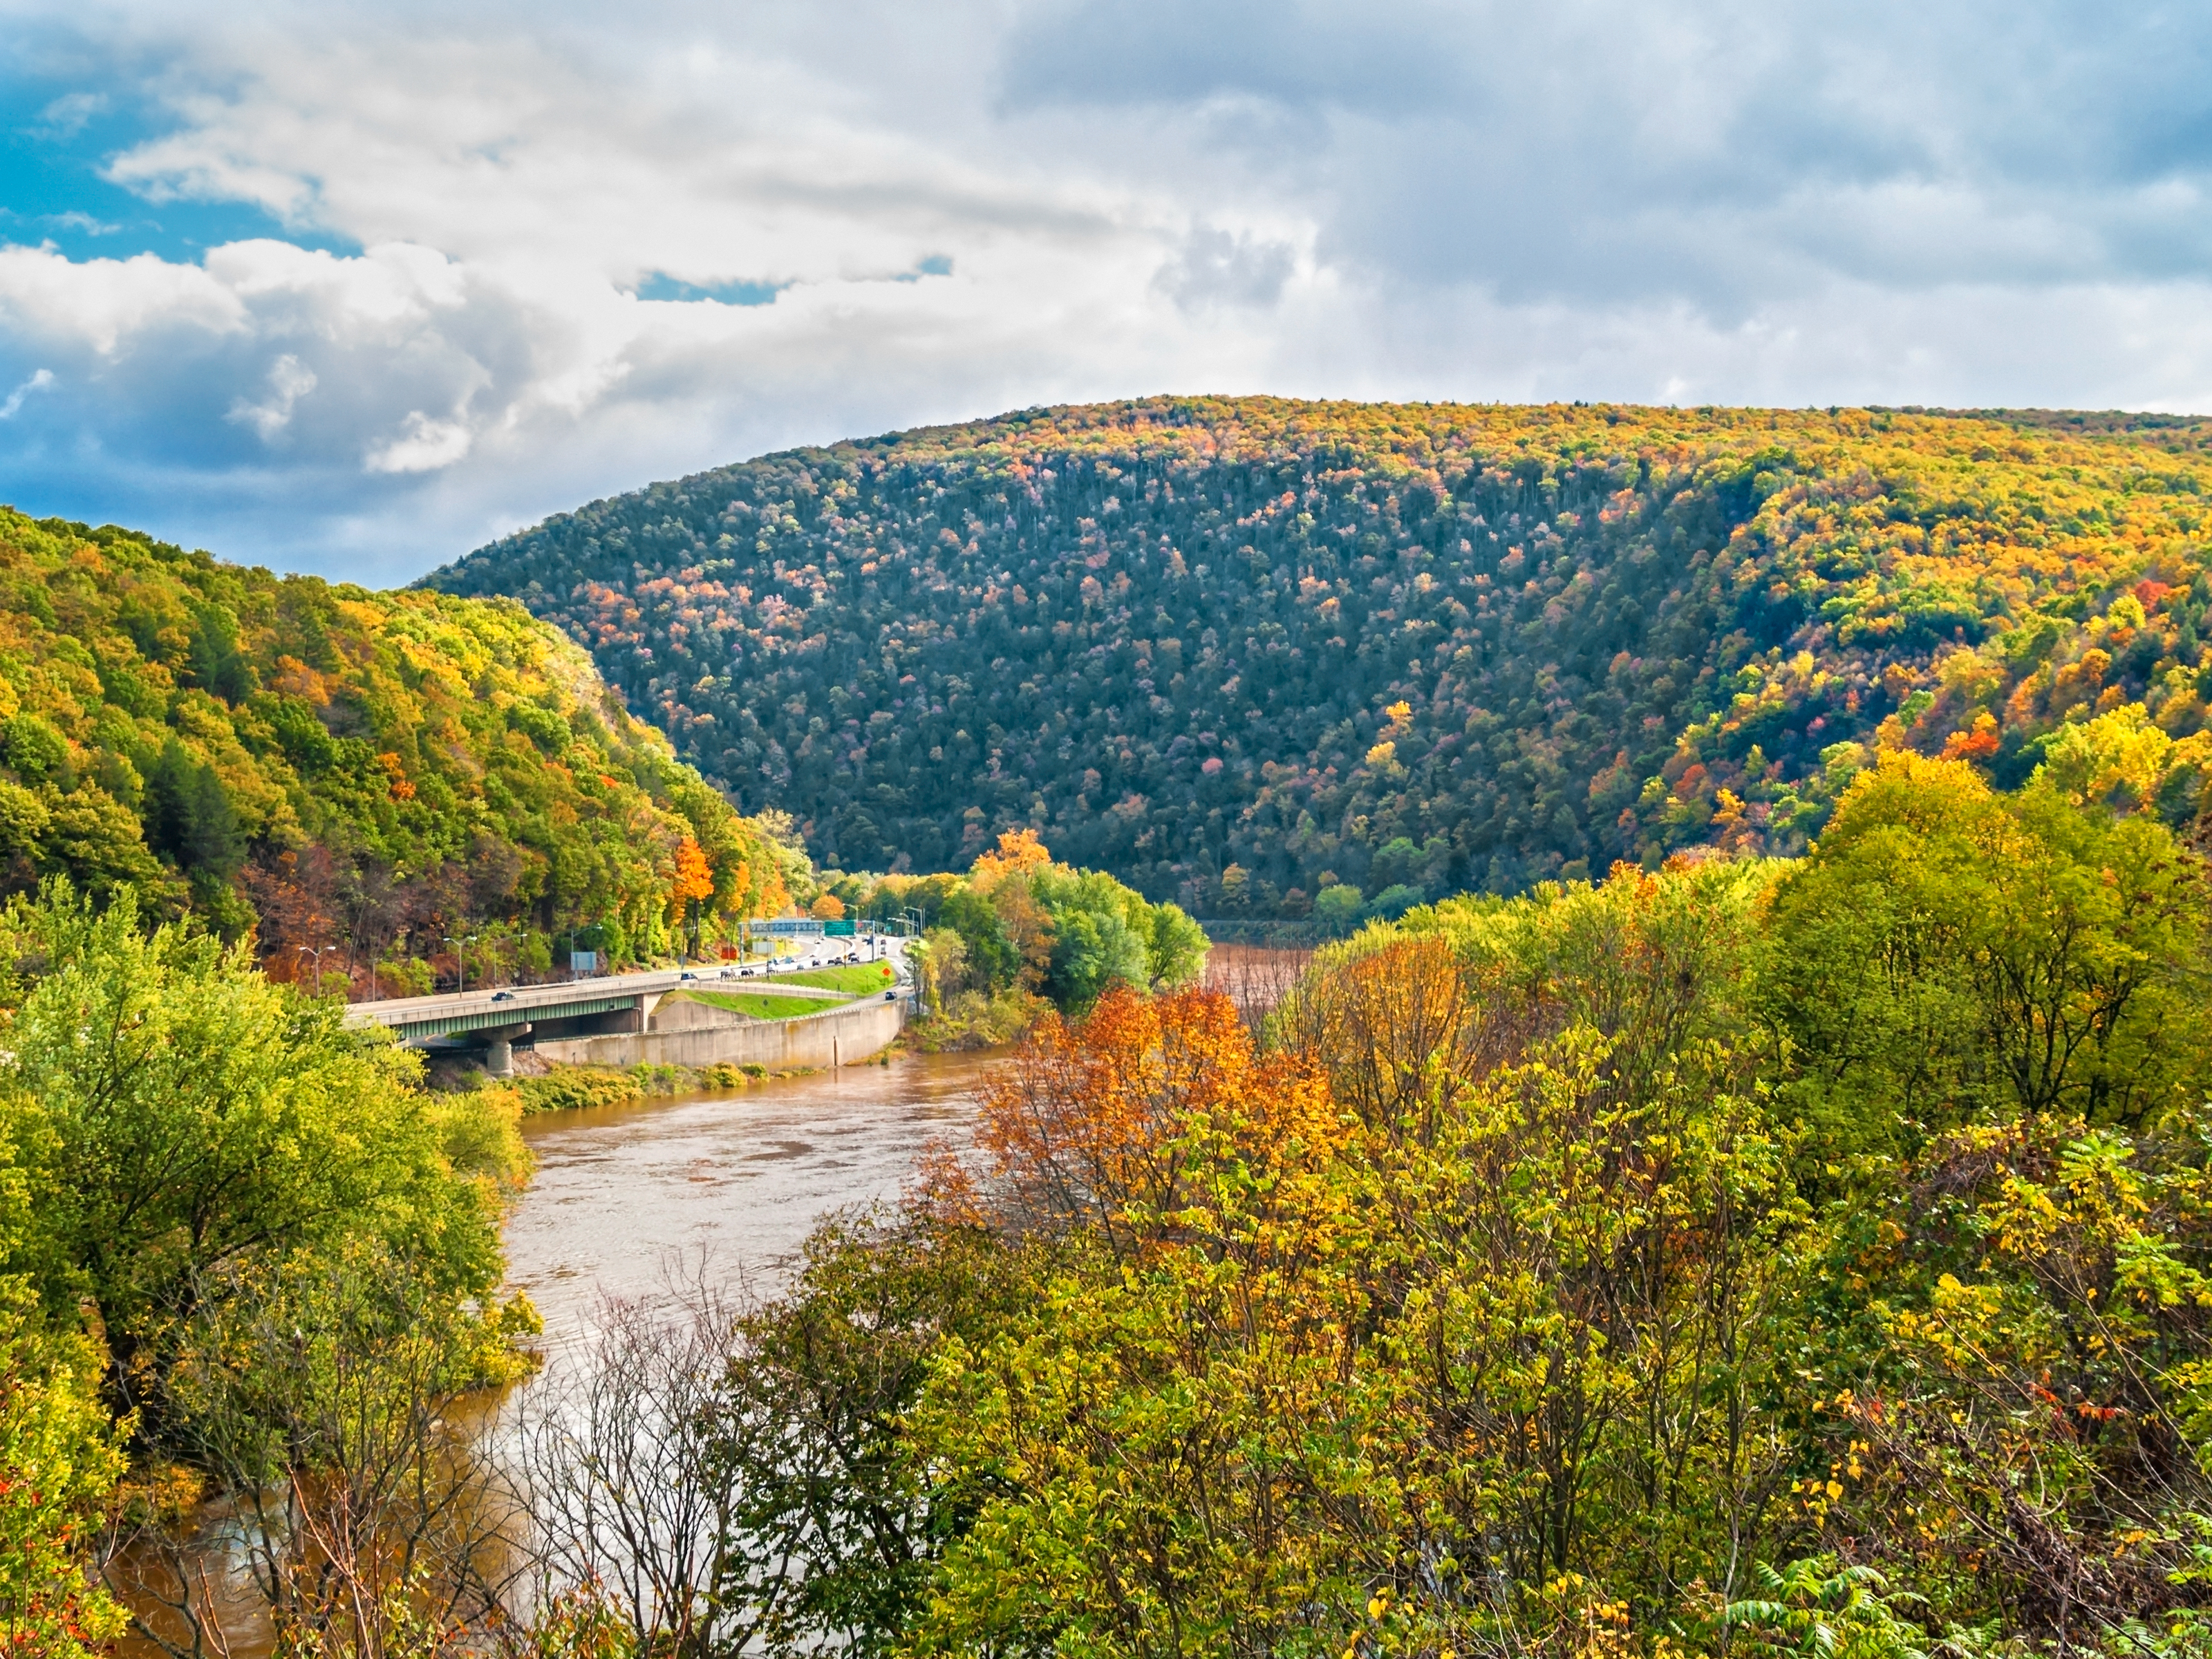 Delaware Water Gap National Recreation Area between New Jersey and Pennsylvania.